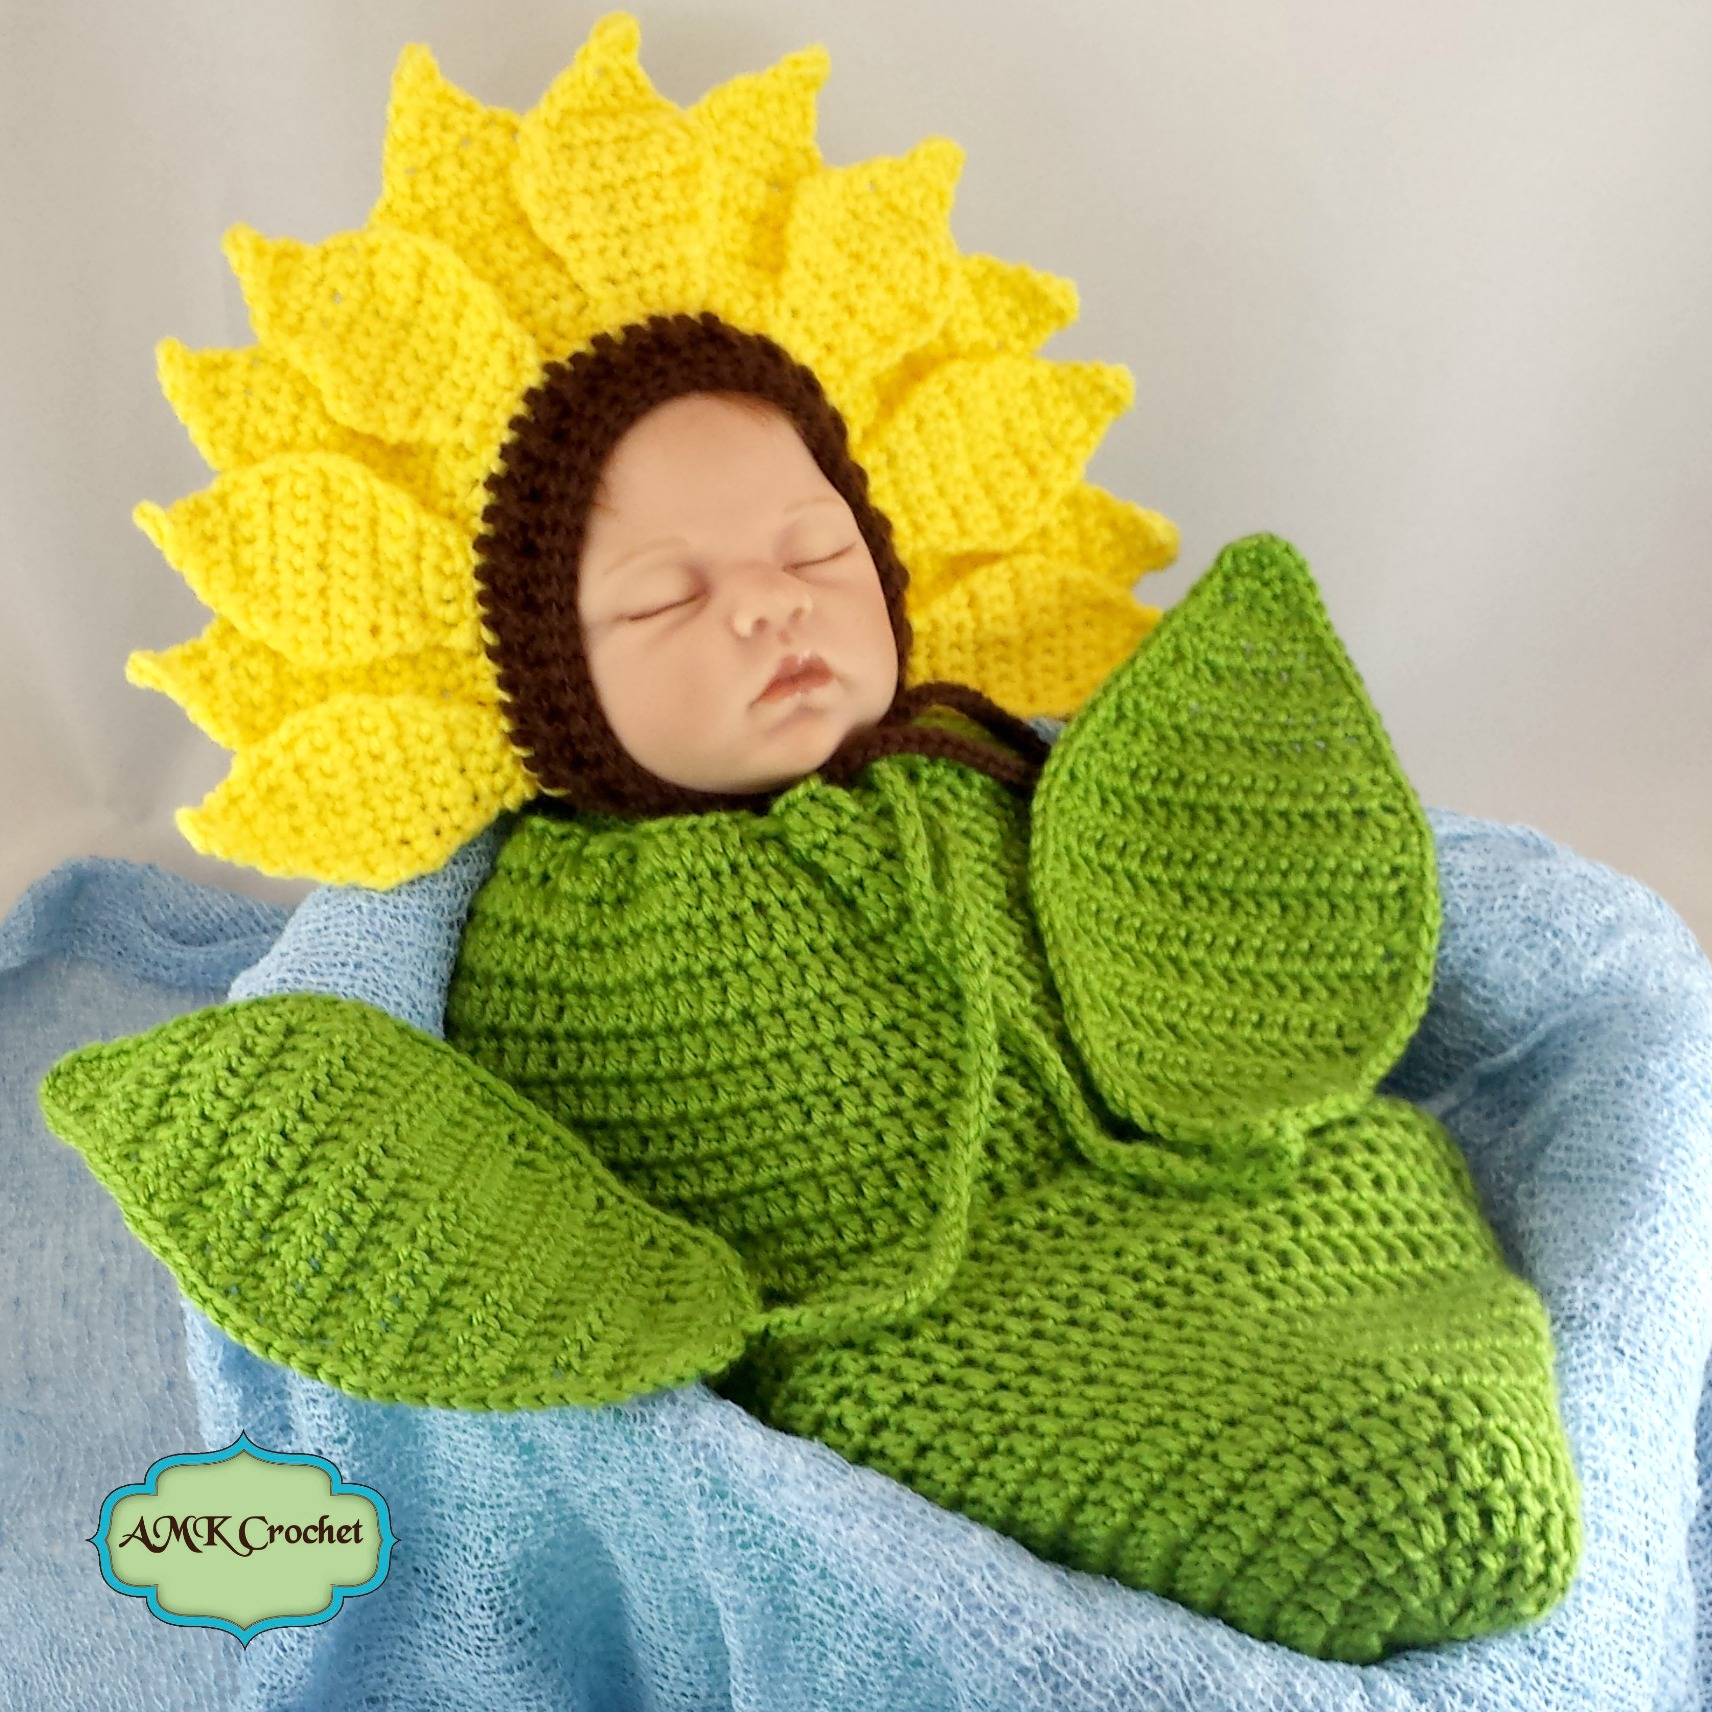 Crochet Newborn Sunflower Photo Prop Pattern | AMK Crochet